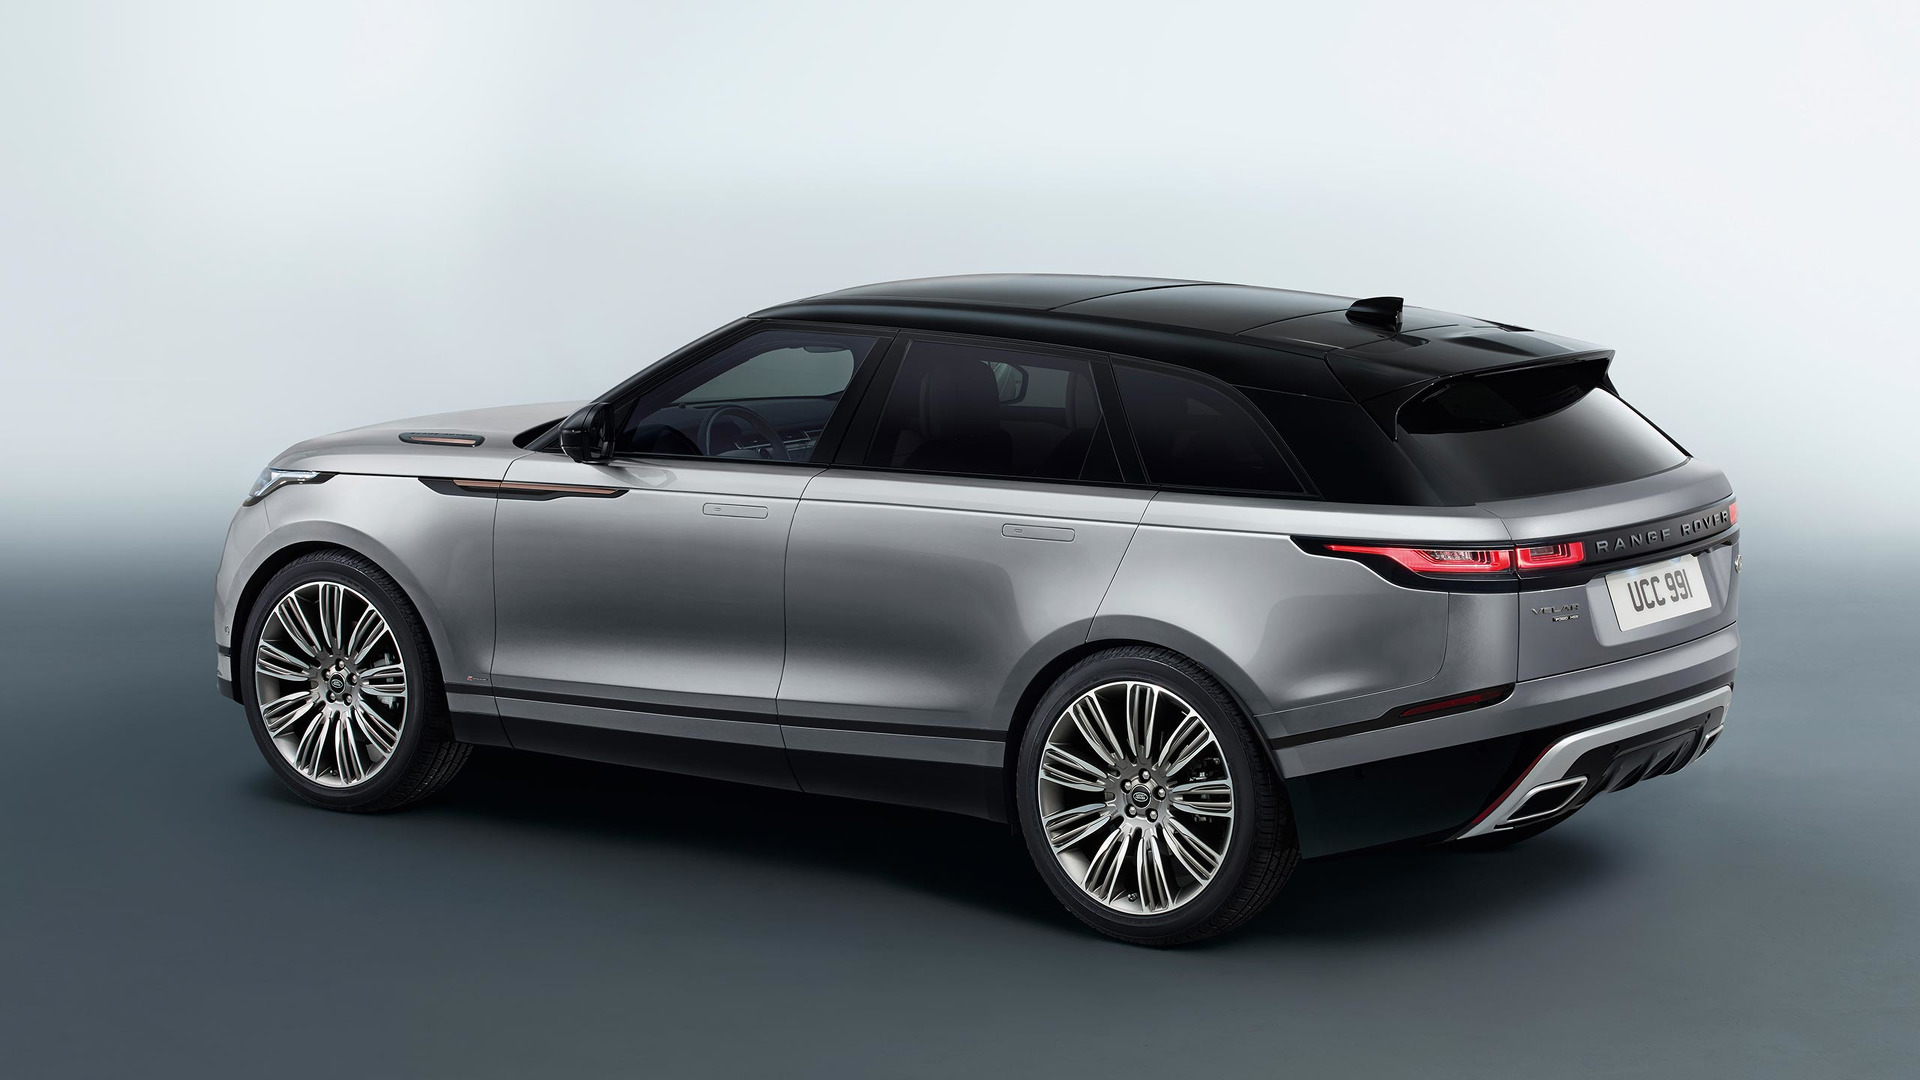 2019 Range Rover Velar SVR: News, Specs, Price >> The Most Expensive Land Rover Range Rover Velar Costs 103 265